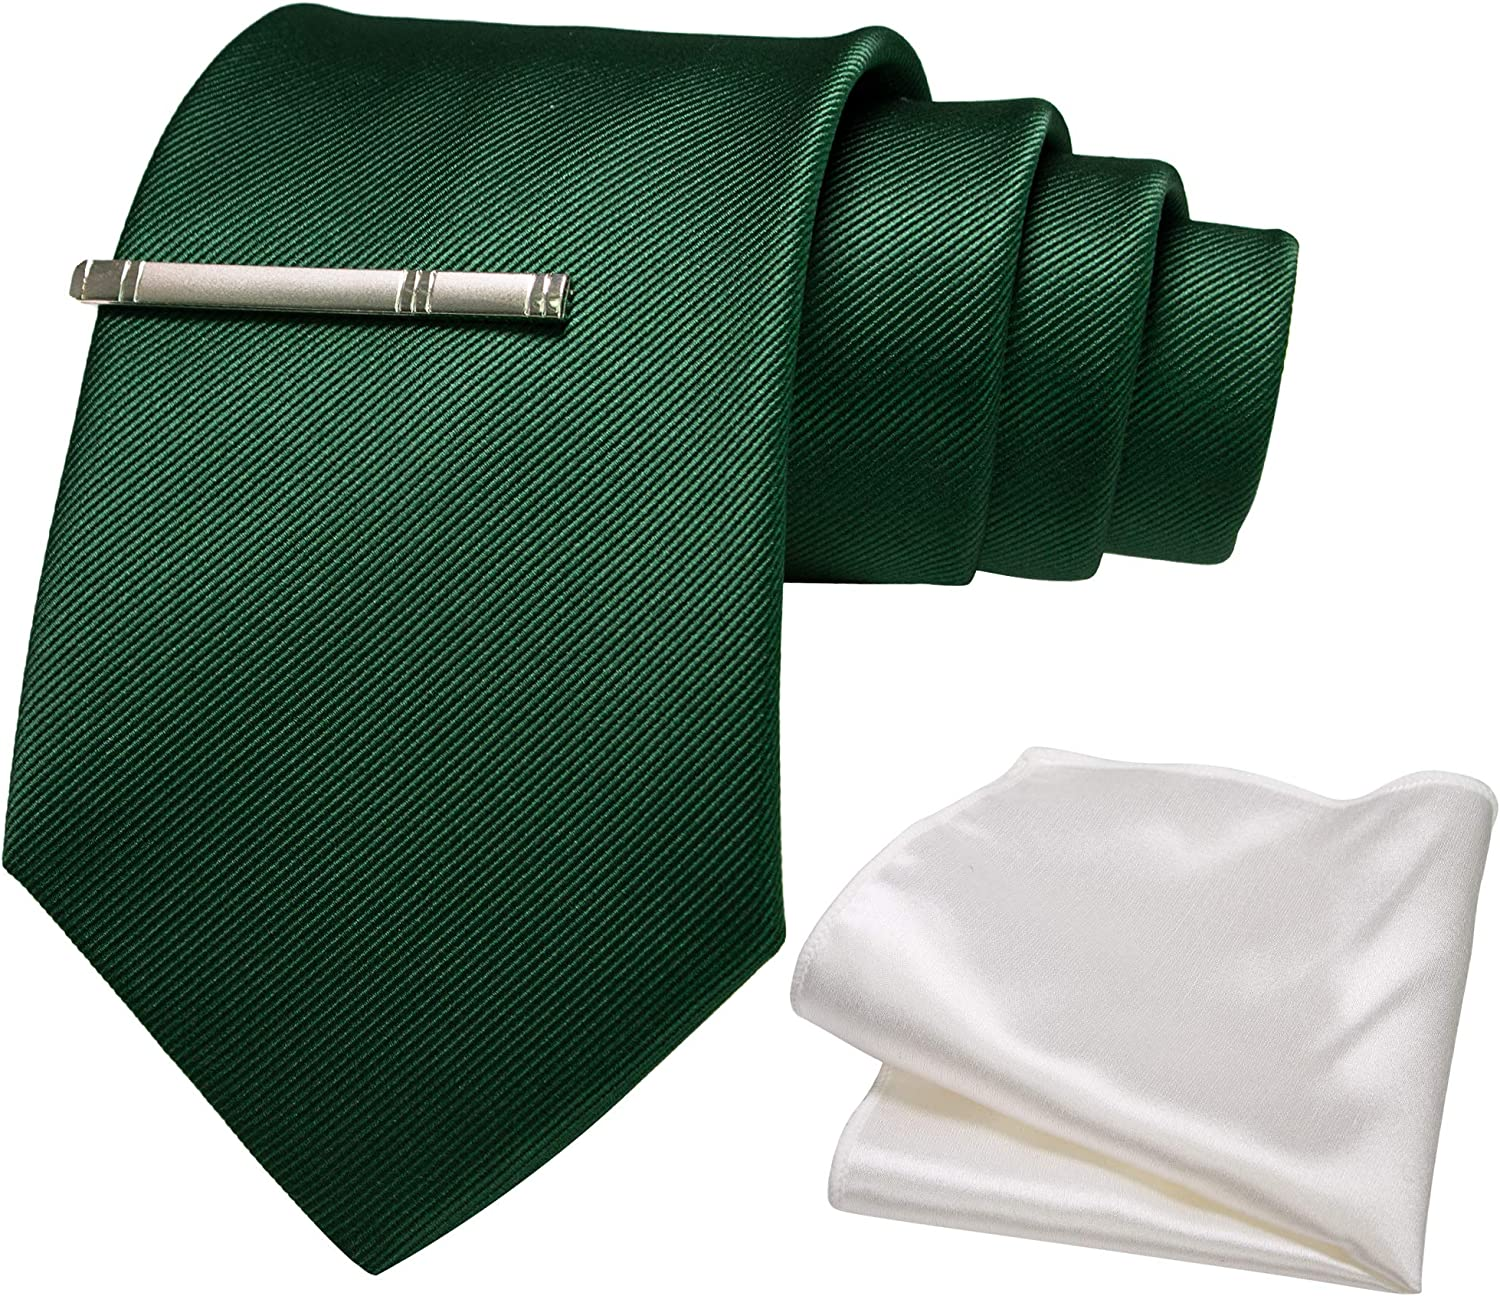 JEMYGINS Solid Color Extra Long Tie and White Pocket Square with Tie Clip Sets for Men+ Gift Box(XL Size)